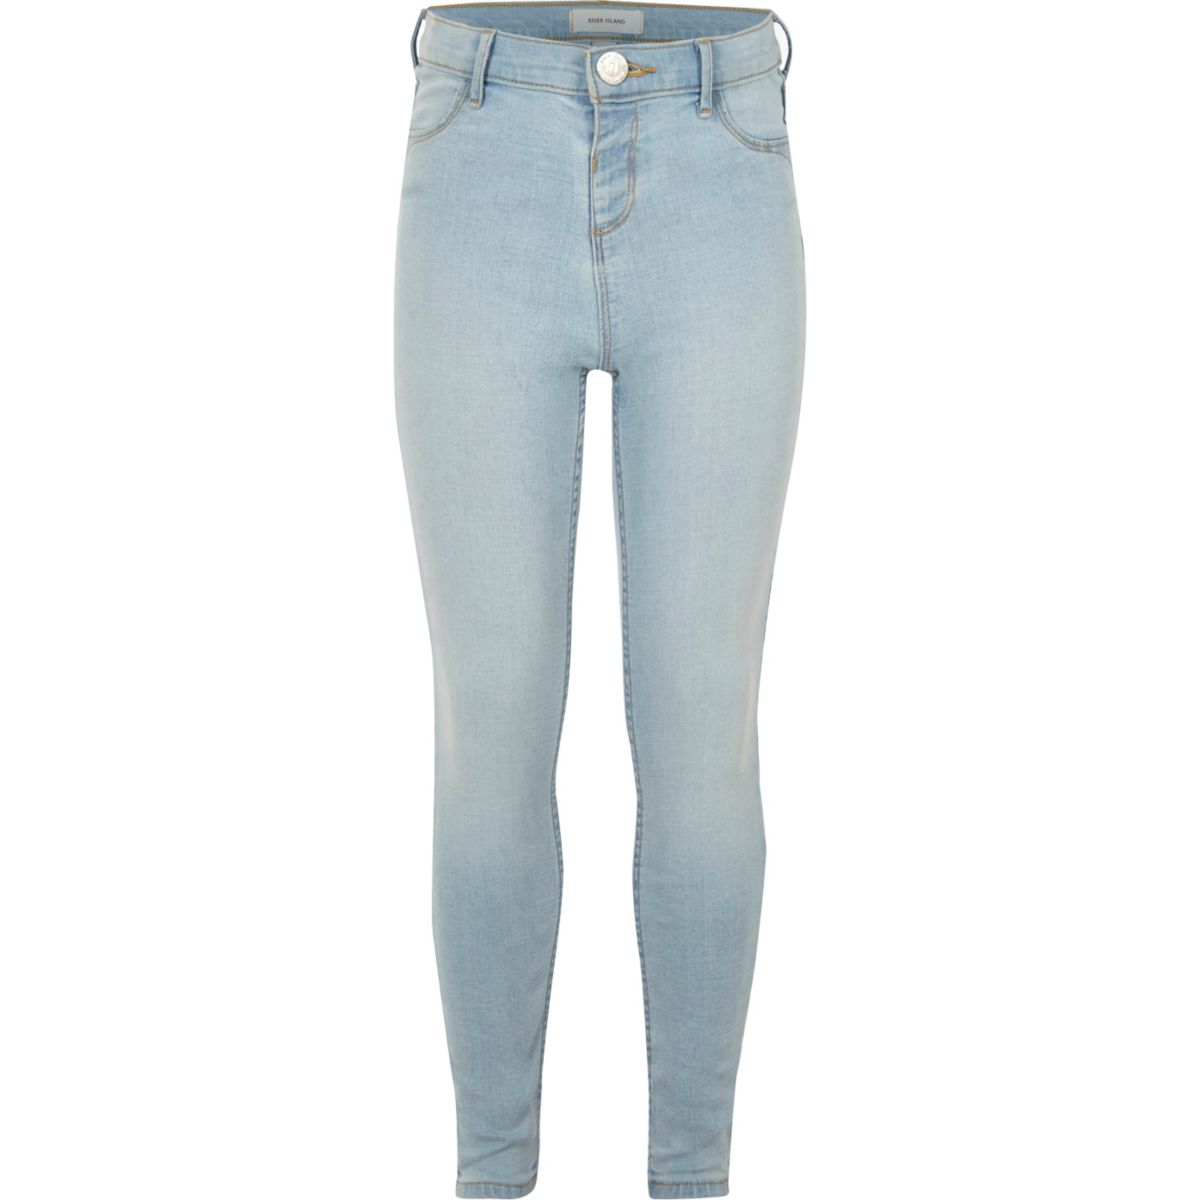 girls light blue molly jeggings jeggings jeans girls